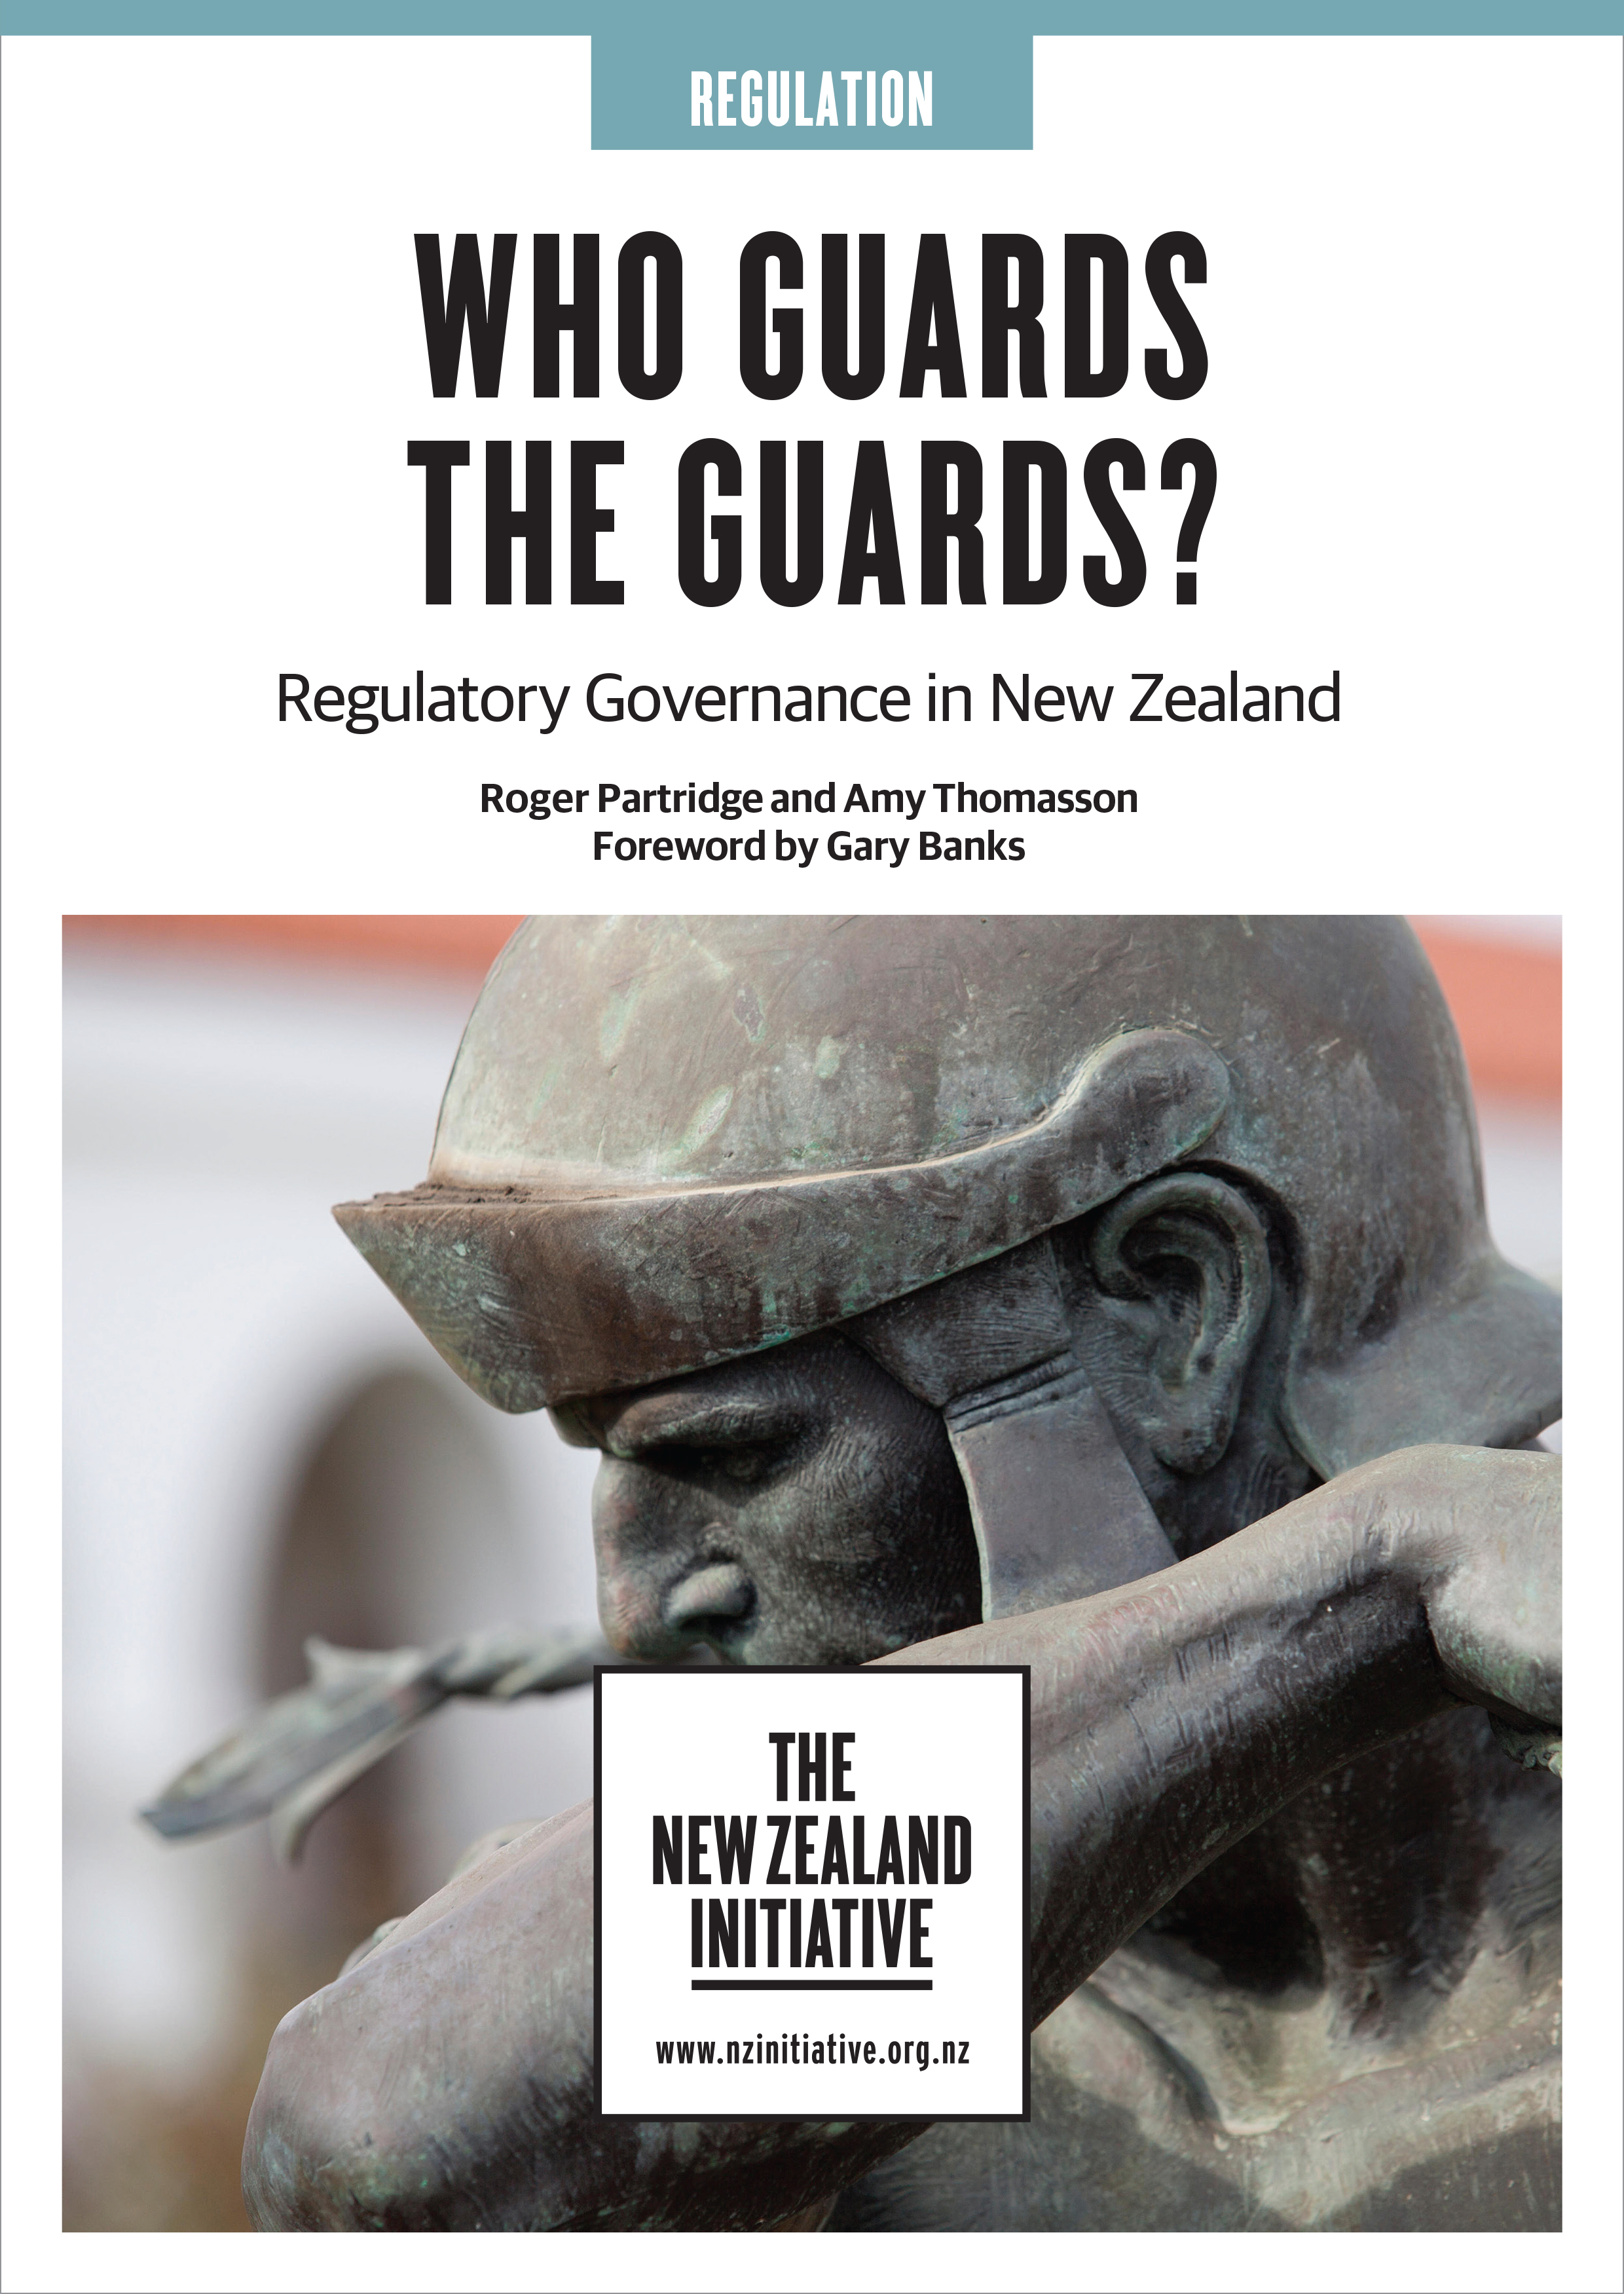 Who guards the guards cover3